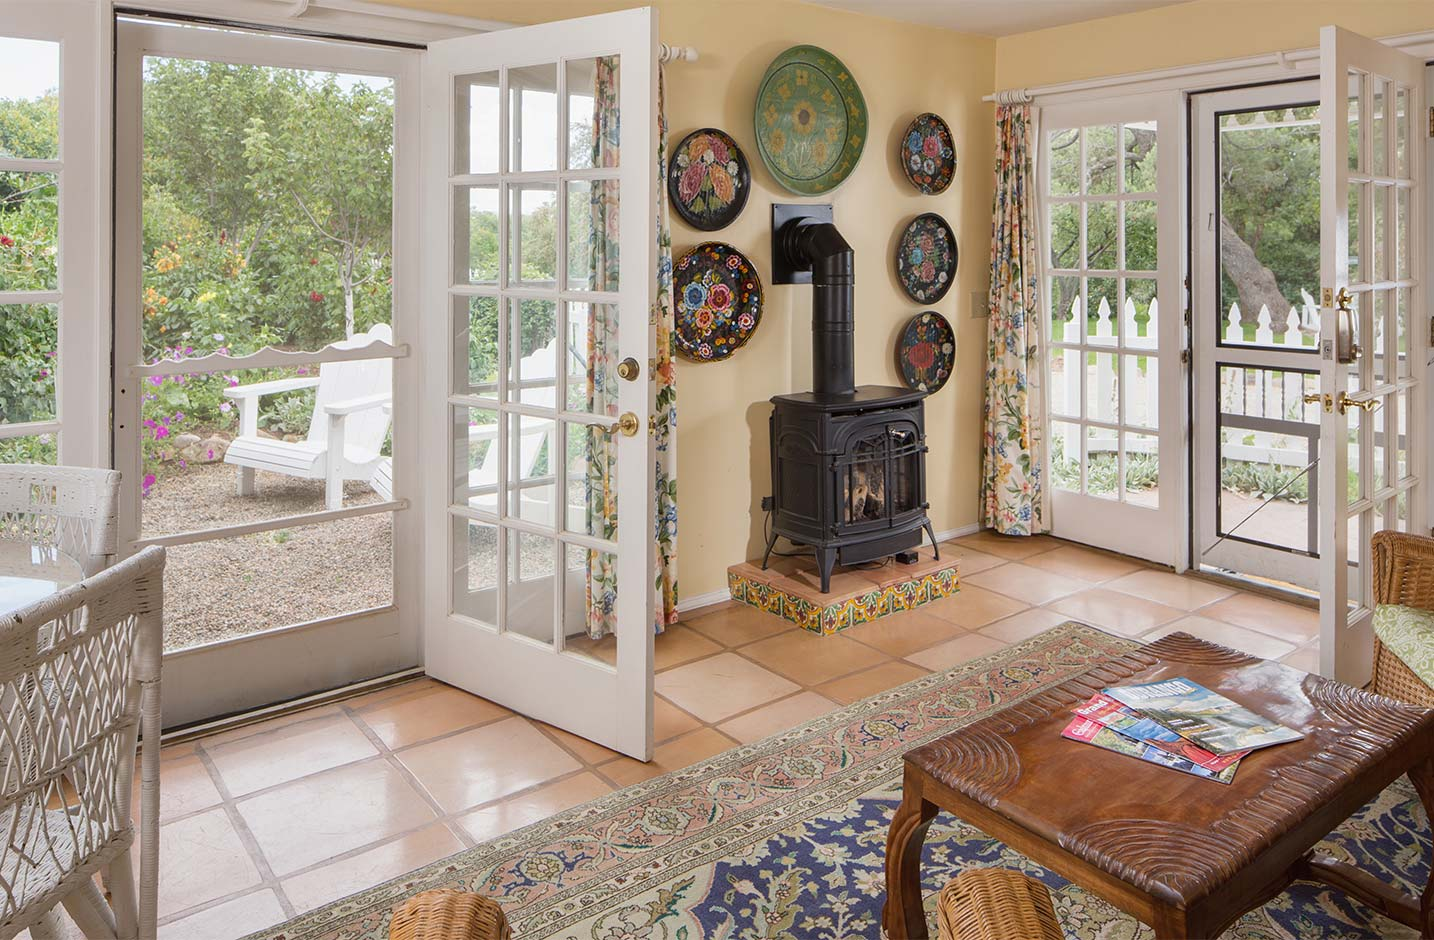 Cozy living room with fireplace and screen door to outside seating